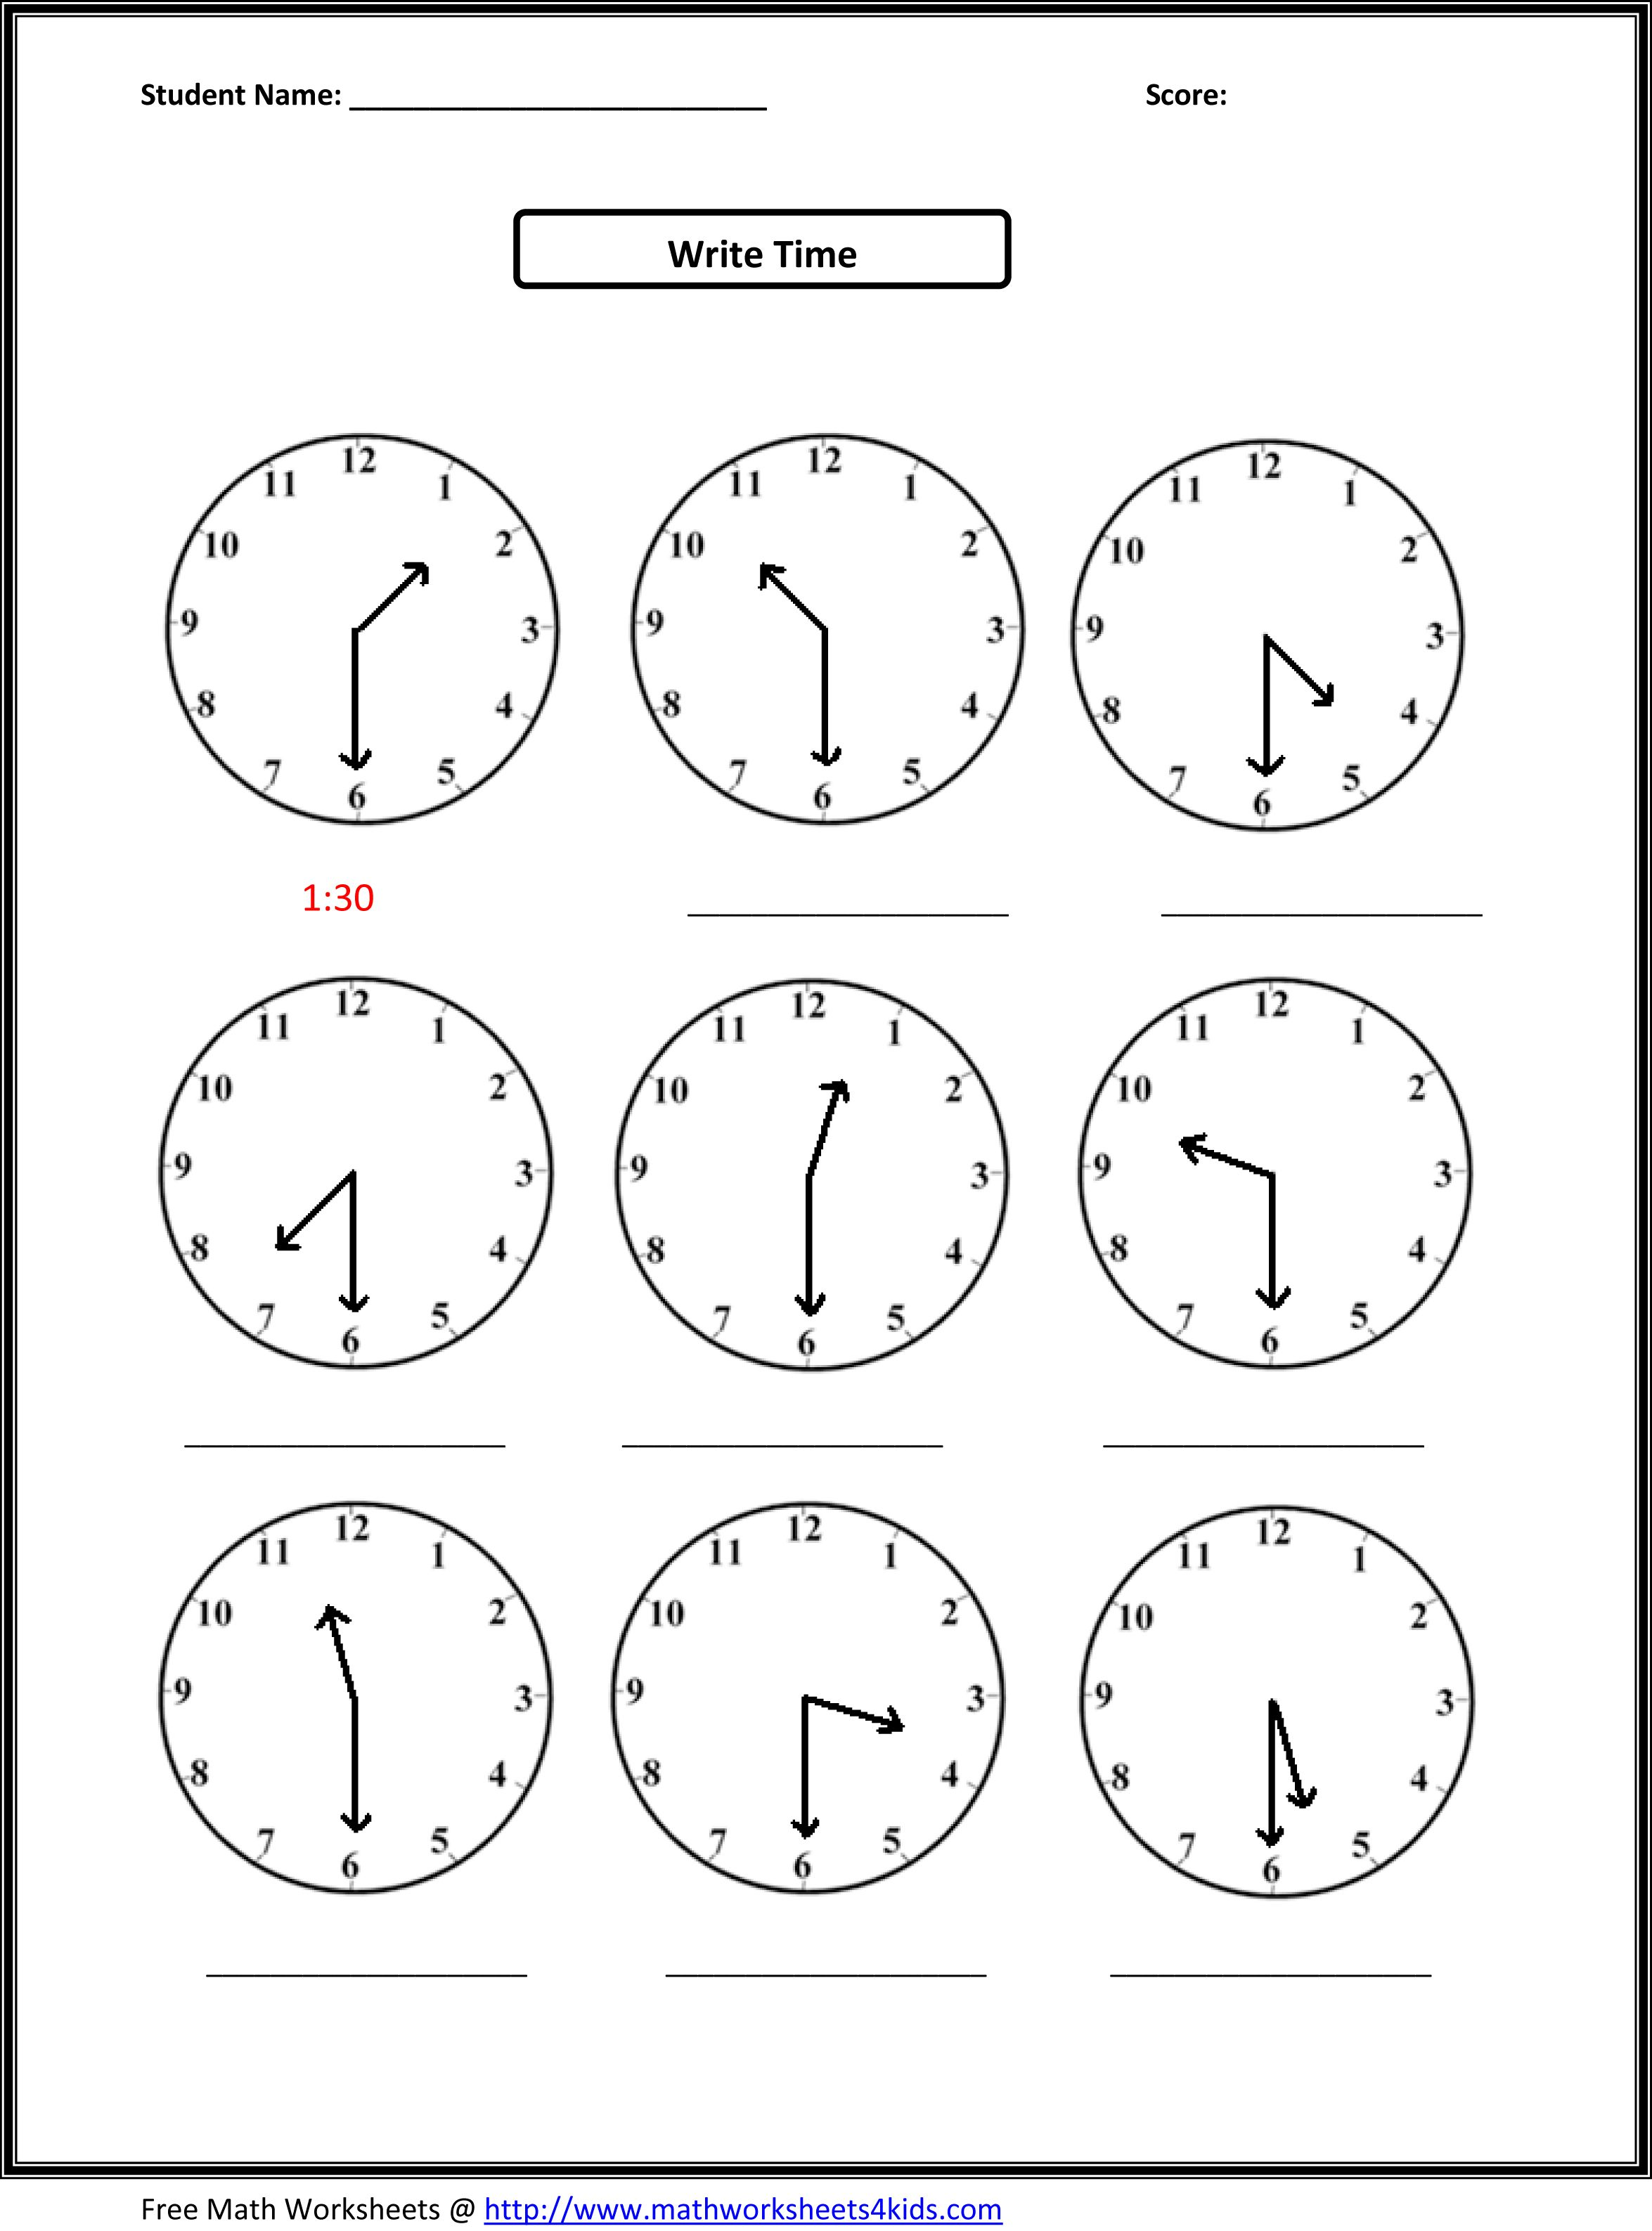 Weirdmailus  Picturesque Worksheet On Time For Grade   Reocurent With Fascinating Free Printable Telling Time Worksheets Nd Grade  Reocurent With Alluring Worksheets For Year  English Also Trig Ratio Worksheet In Addition Erosion And Deposition Worksheet And Worksheets On Proportional Relationships As Well As Places In The Neighborhood Worksheet Additionally Free Printable Name Tracing Worksheets From Reocurentcom With Weirdmailus  Fascinating Worksheet On Time For Grade   Reocurent With Alluring Free Printable Telling Time Worksheets Nd Grade  Reocurent And Picturesque Worksheets For Year  English Also Trig Ratio Worksheet In Addition Erosion And Deposition Worksheet From Reocurentcom